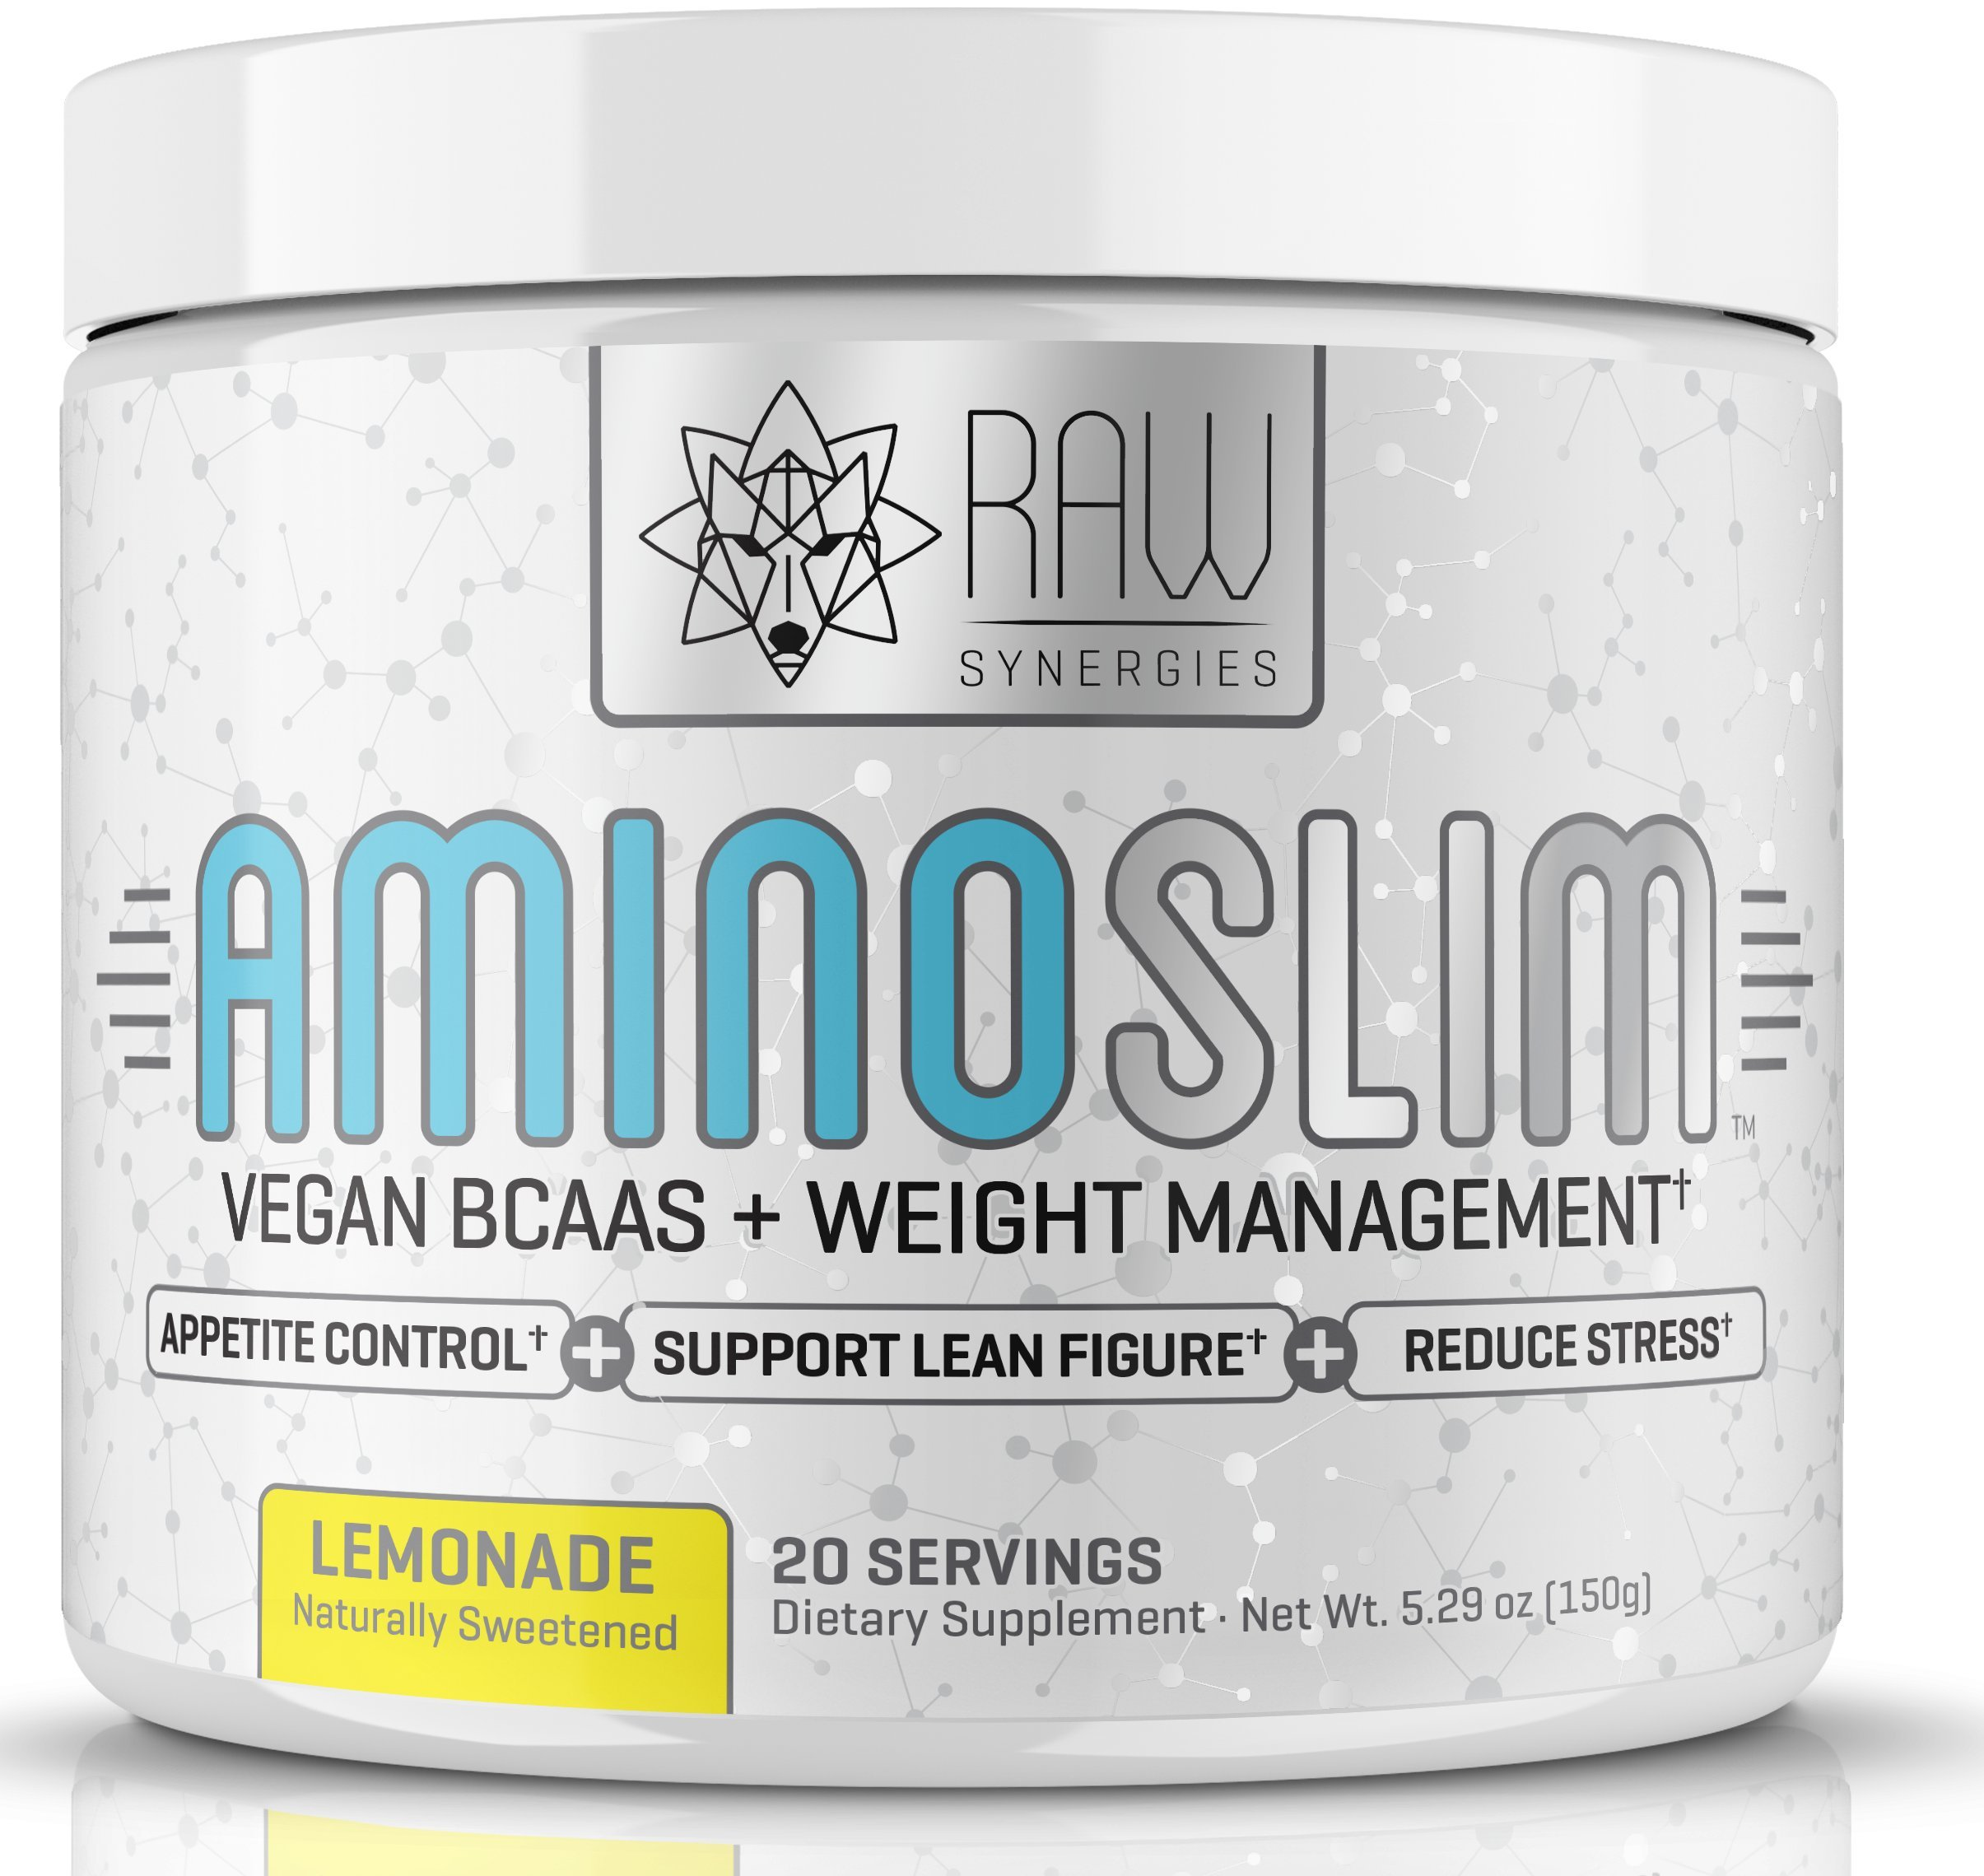 Amino Slim Slimming BCAA Weight Loss Drink for Women, Vegan Amino Acids & L Glutamine Powder for Post Workout Recovery & Fat Burning | Daily Appetite Suppressant, Metabolism Booster & Stress Relief